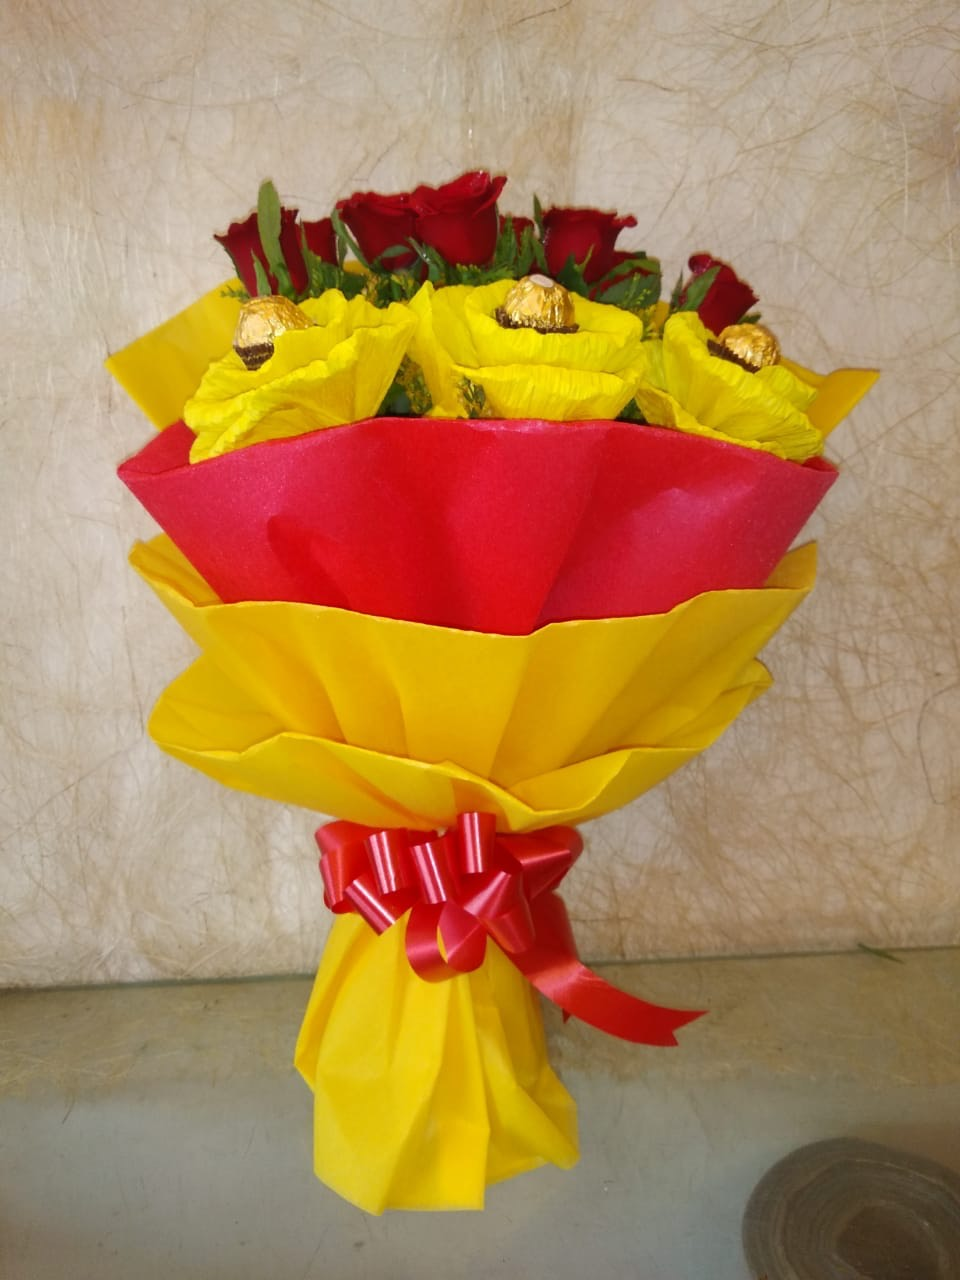 Flowers Delivery in Sector 53 GurgaonRed Roses Ferrero Rocher Bunch